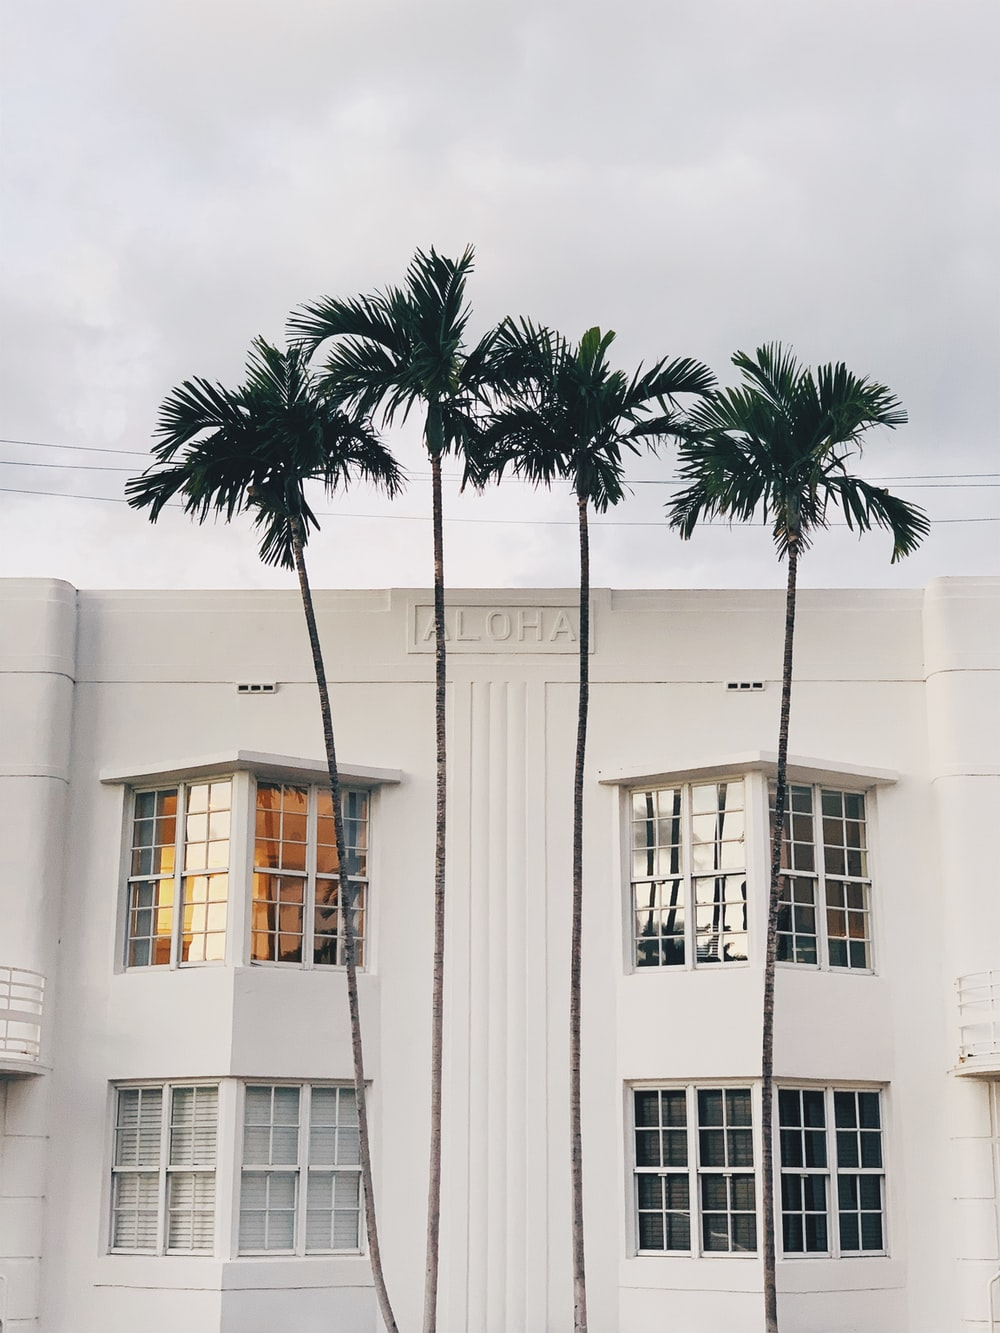 white concrete building with palm tree in front